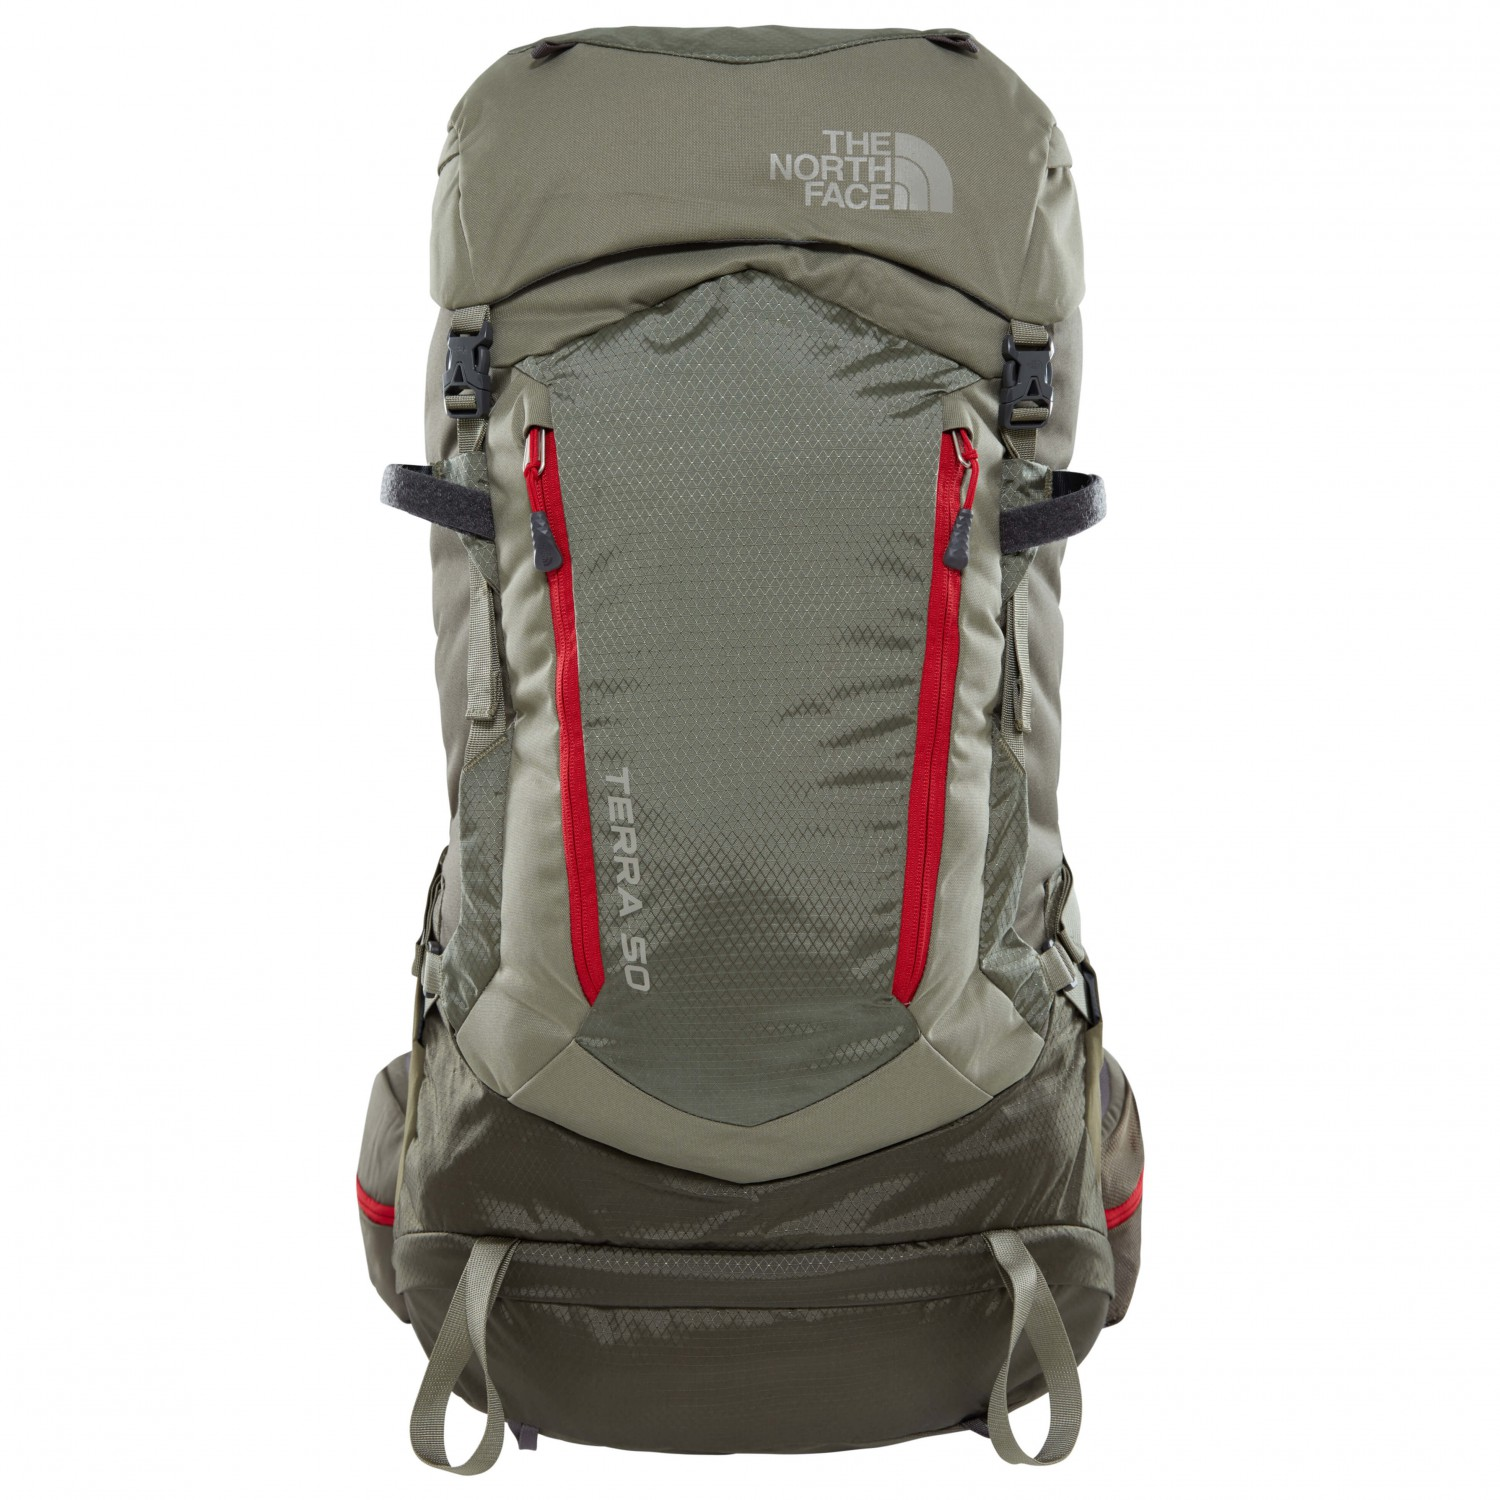 The North Face - Terra 50 - Trekking backpack 178a08722bba